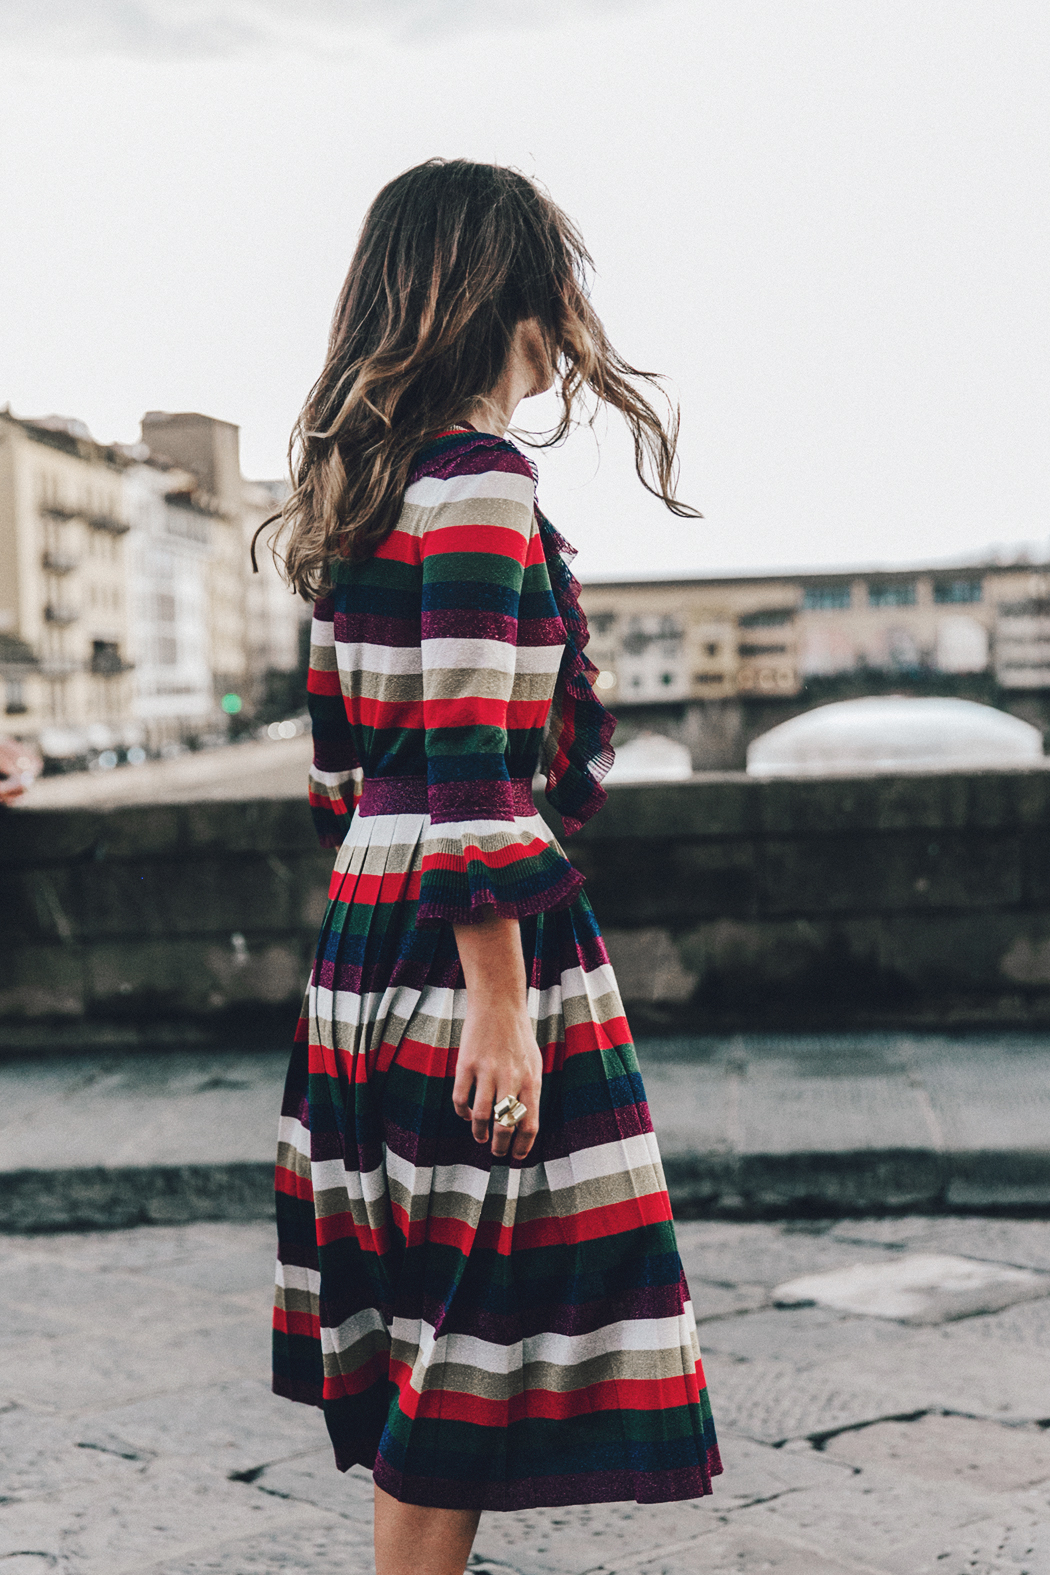 Firenze4Ever-Luisa_VIa_Roma-Gucci_Striped_Dress-Gucci_Gold_Sandals-Outfit-Florence-Street_Style-36